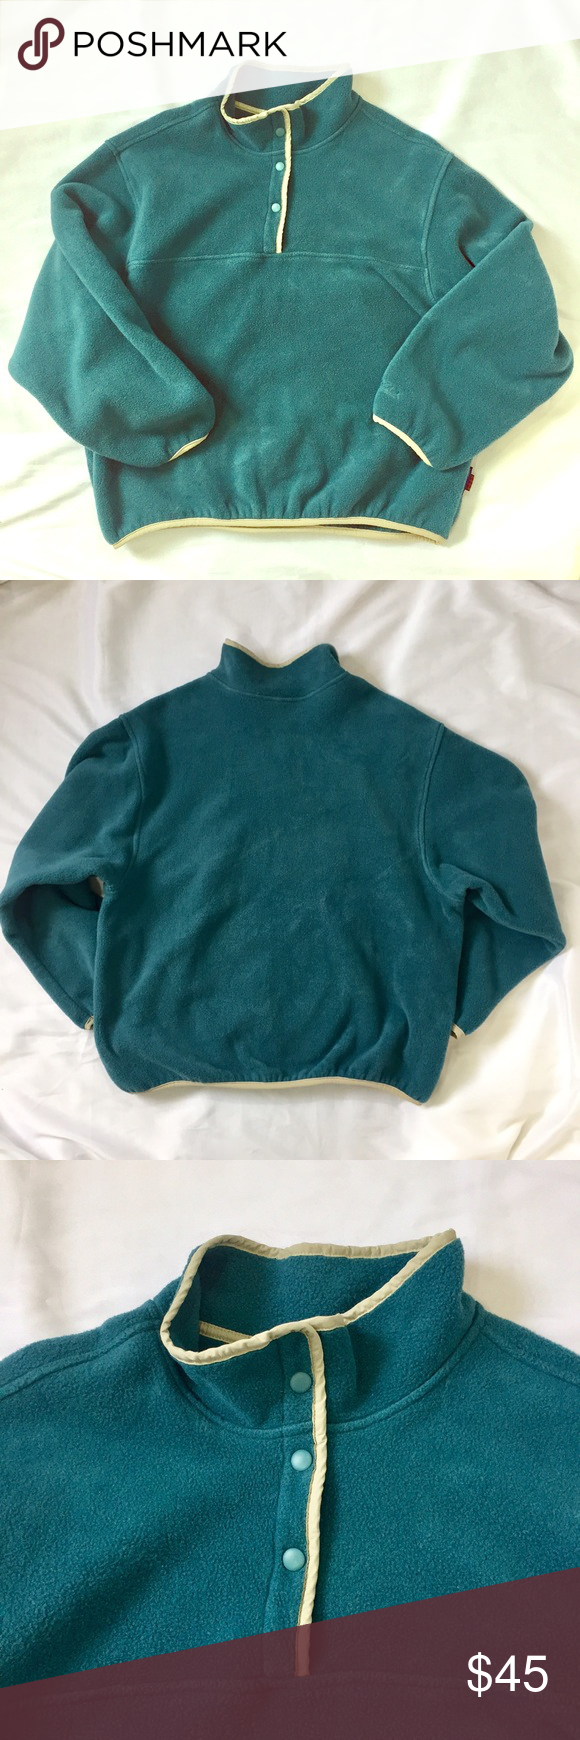 Snap Fleece Pullover Like New! Women's snap neck fleece pullover by Woolrich. Soft, dark teal fleece with contrasting light green trim. Mid-weight fleece is perfect for layering on cold days or as a light jacket. No stains or imperfections. trades smoke free home Woolrich Tops Sweatshirts & Hoodies